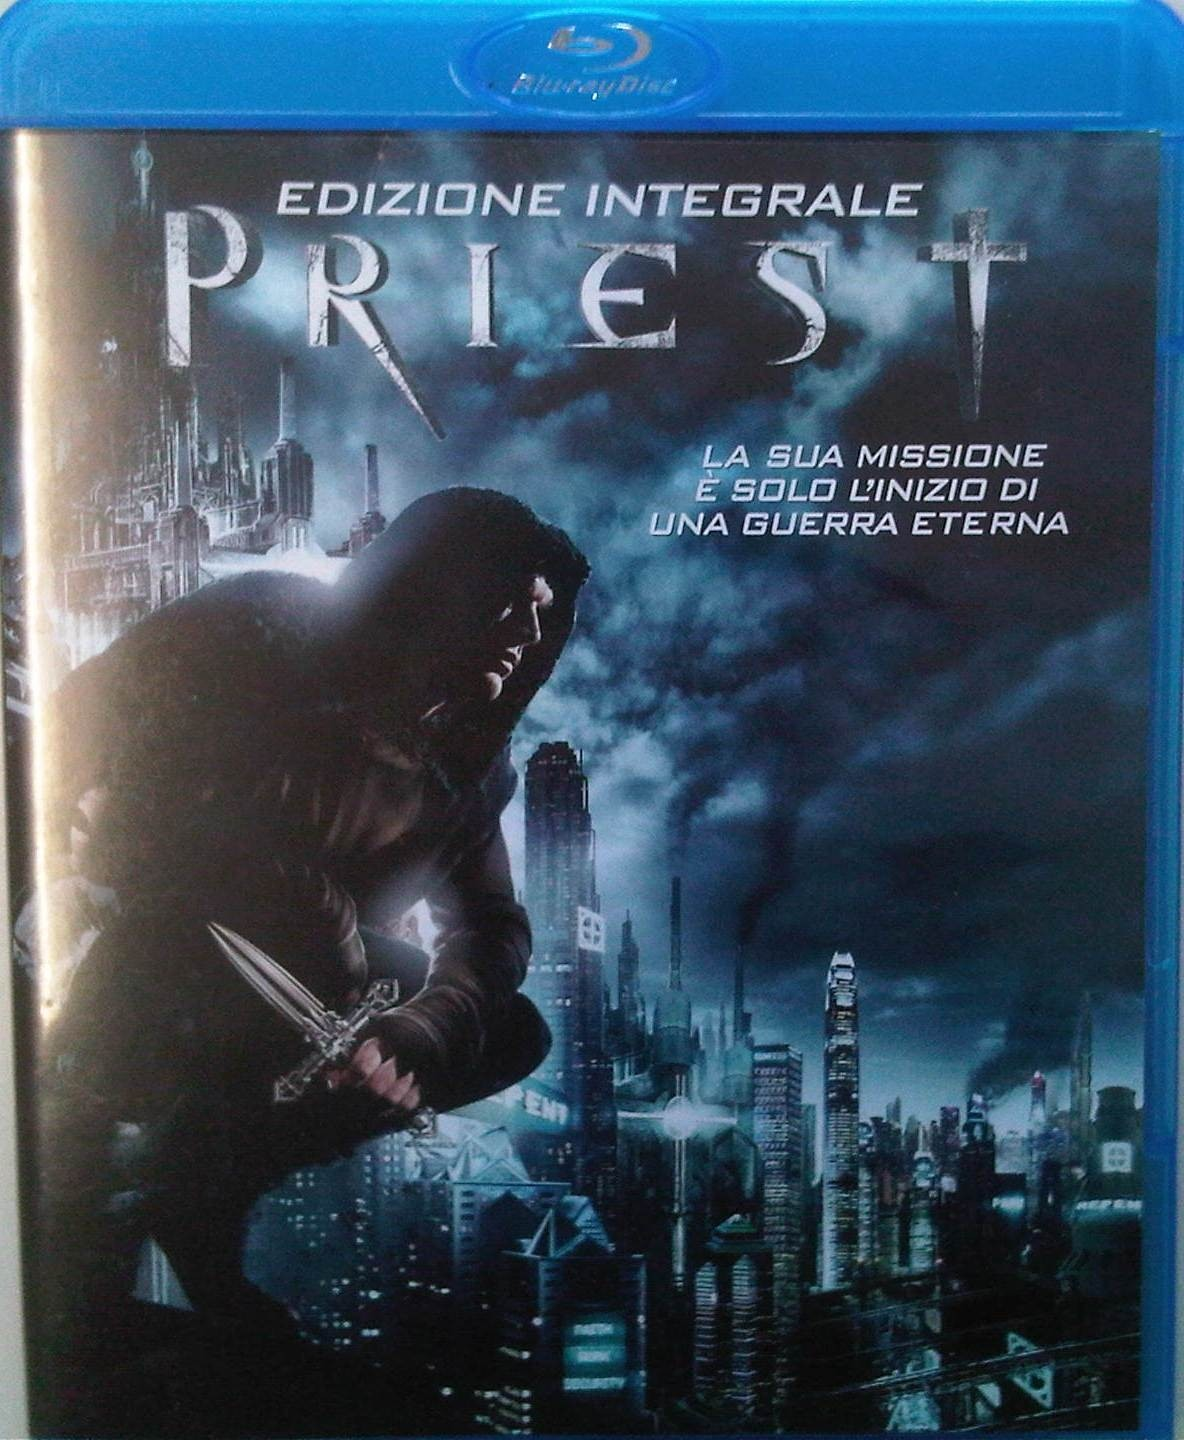 PRIEST - EDIZIONE INTEGRALE   - DVD BLU-RAY